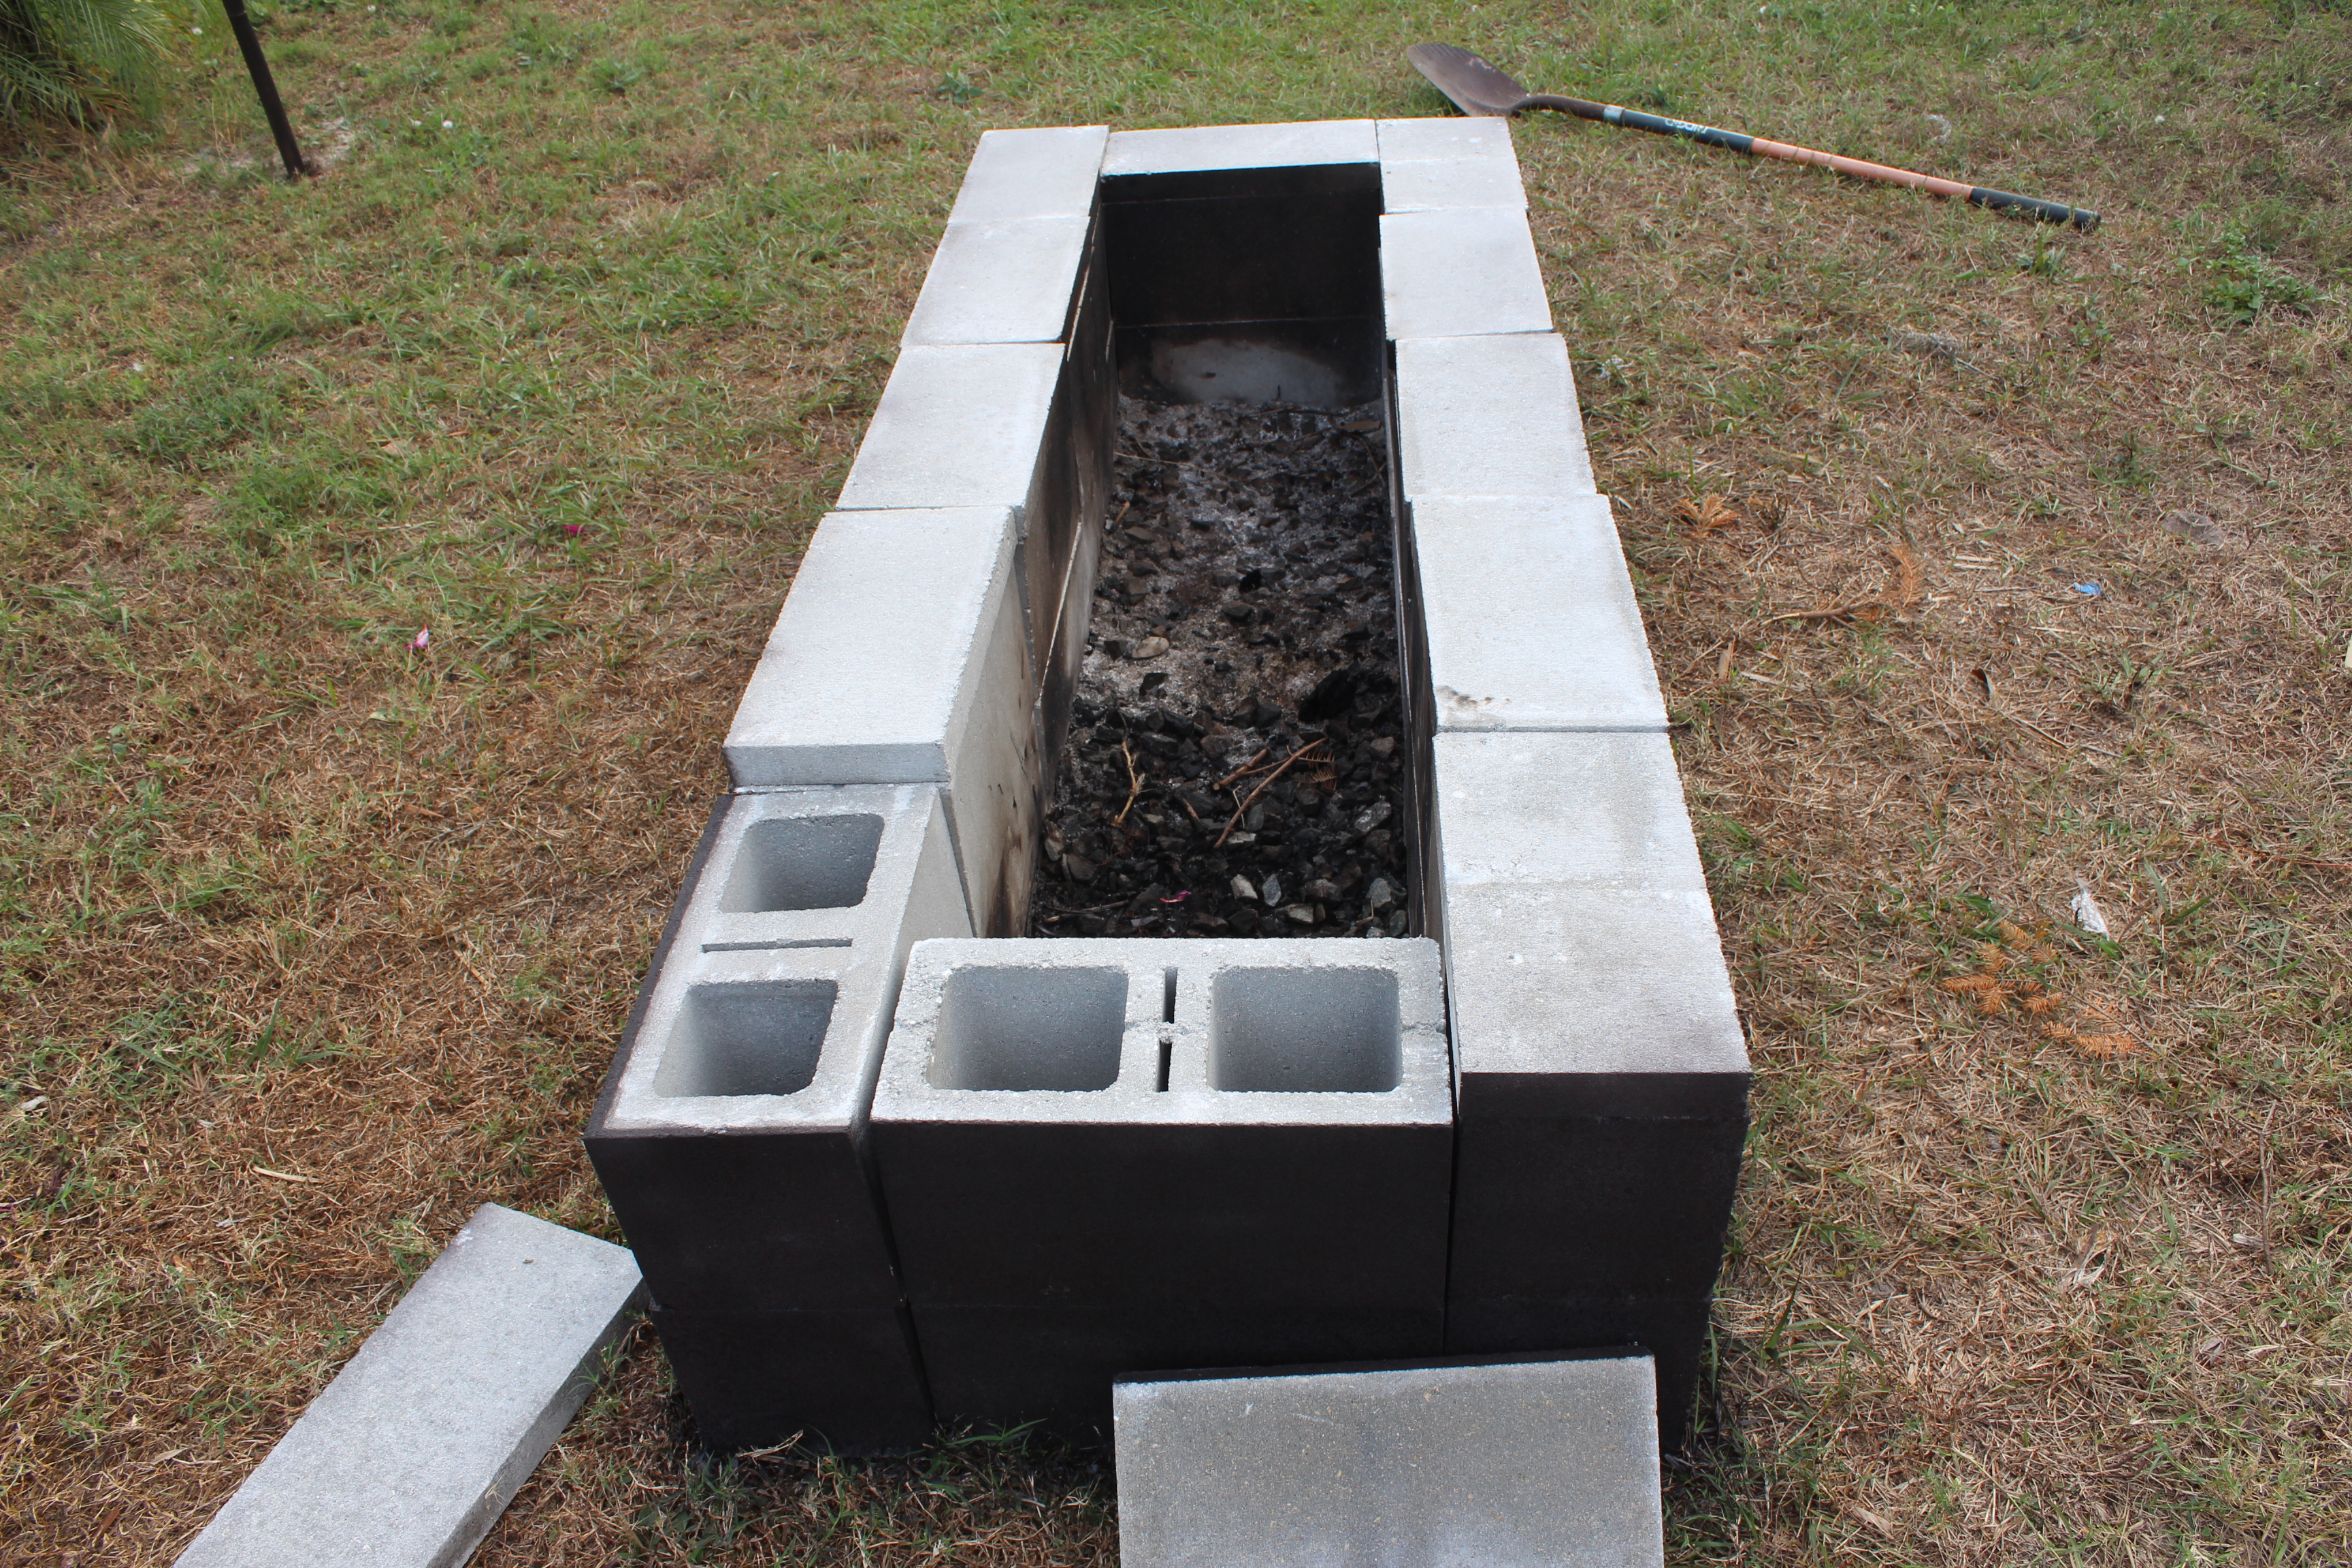 round cinder block fire pit » Design and Ideas on Simple Cinder Block Fireplace id=45386